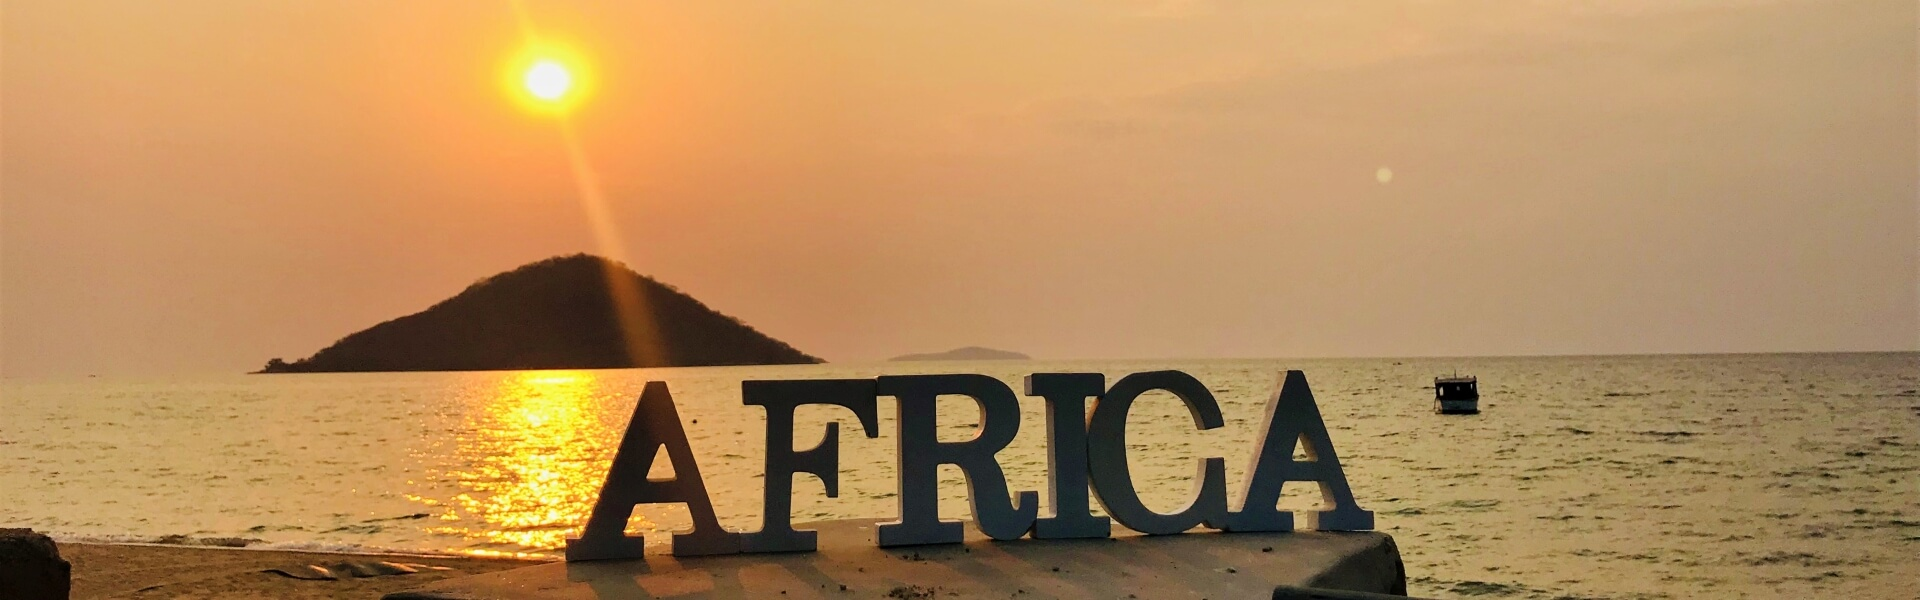 Big letters Africa in front of Lake Malawi